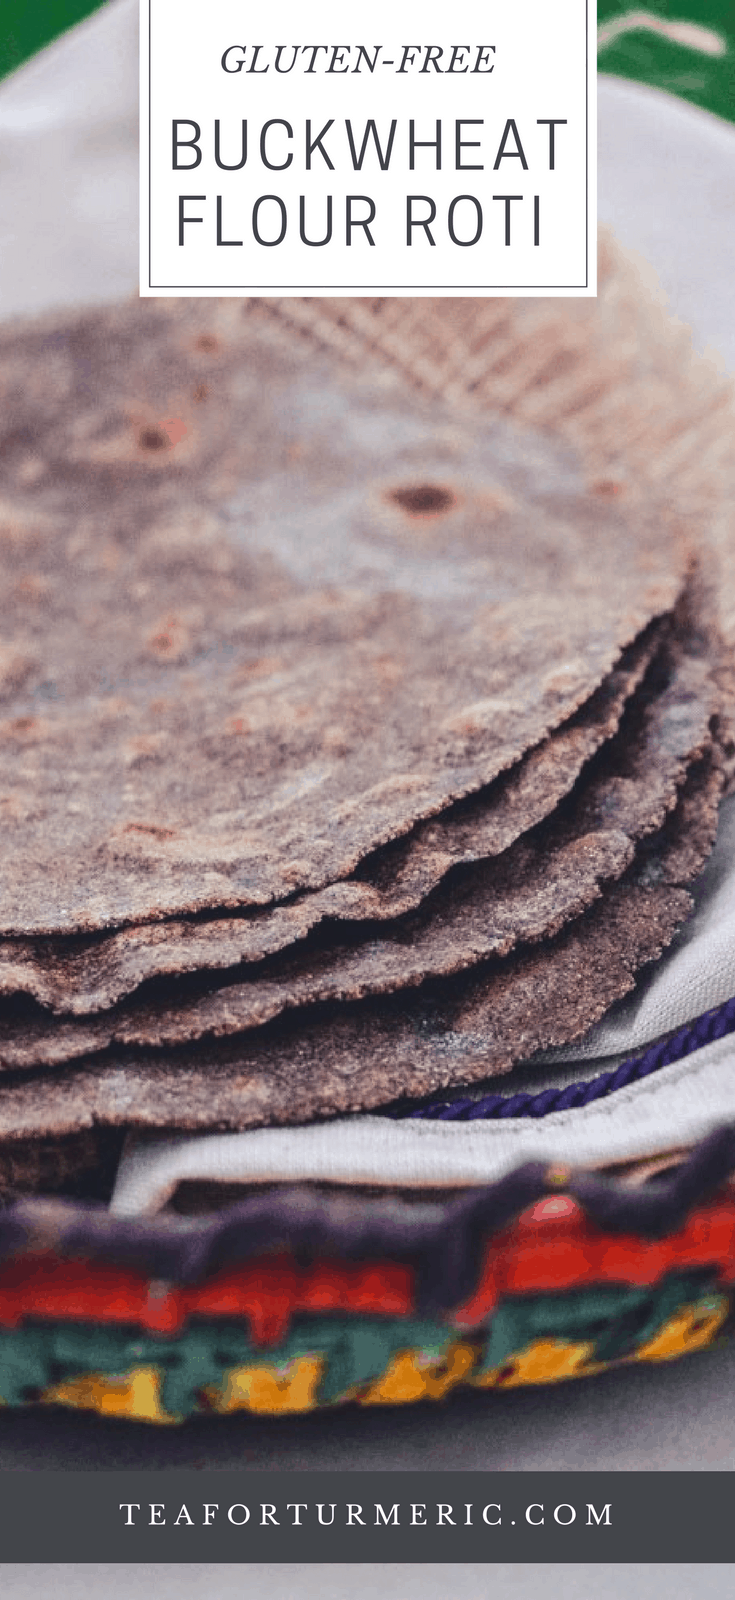 Buckwheat rotis are nutritious, gluten-free and surprisingly pliable. They offer a distinct robust taste and complement many curries very well. They can also be eaten alone or with jam, honey, or anything else roti can be eaten with. #glutenfreeroti